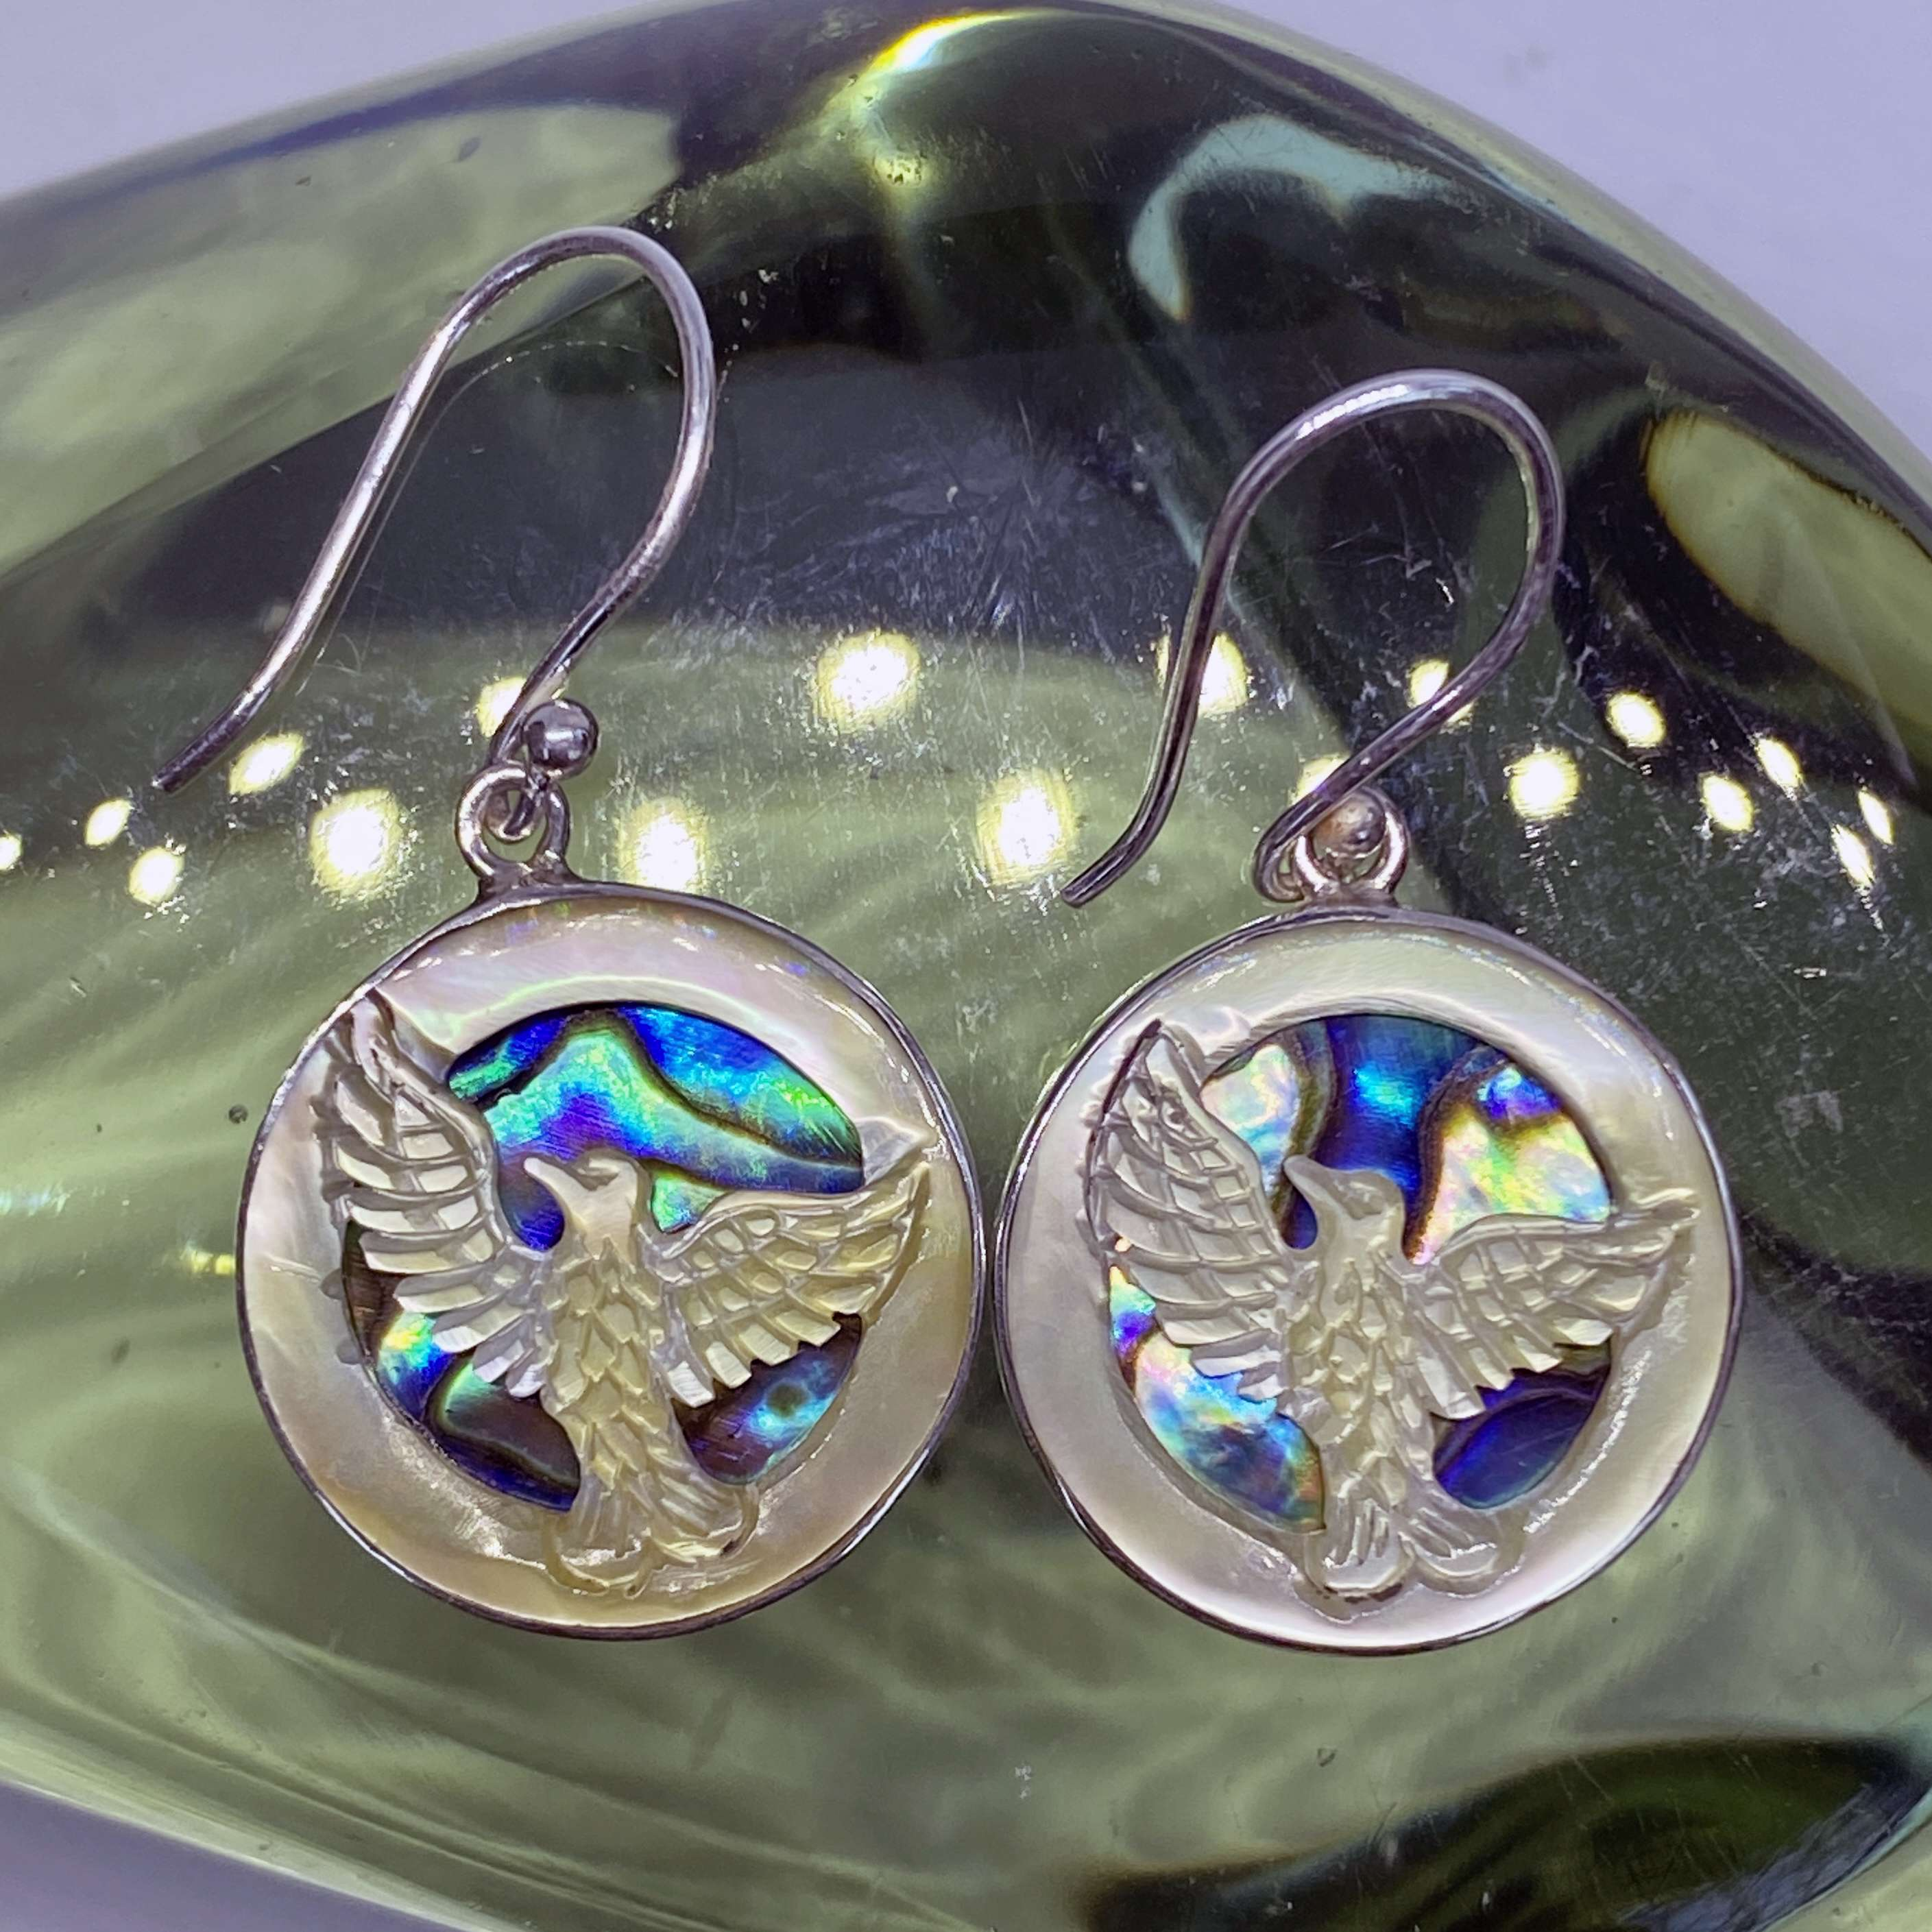 (925 BALI SILVER HAND CARVING EAGLE SHELL EARRINGS WITH ABALONE)